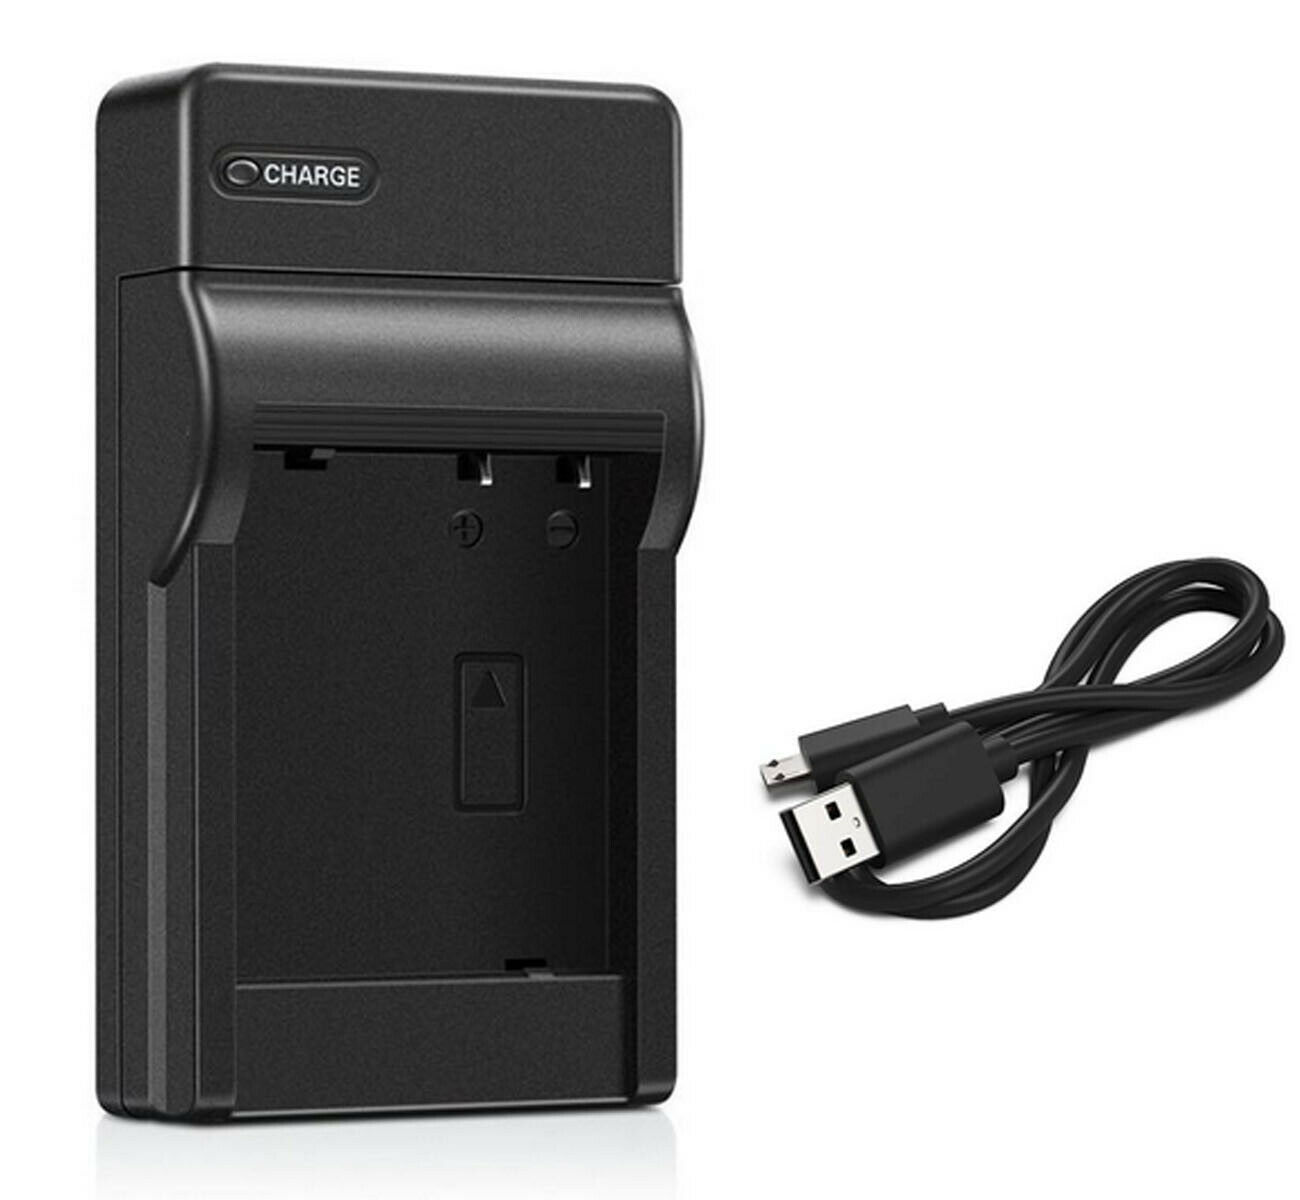 CCD-TRV318E Handycam Camcorder CCD-TRV308E CCD-TRV318 USB AC Power Adapter Charger for Sony CCD-TRV308